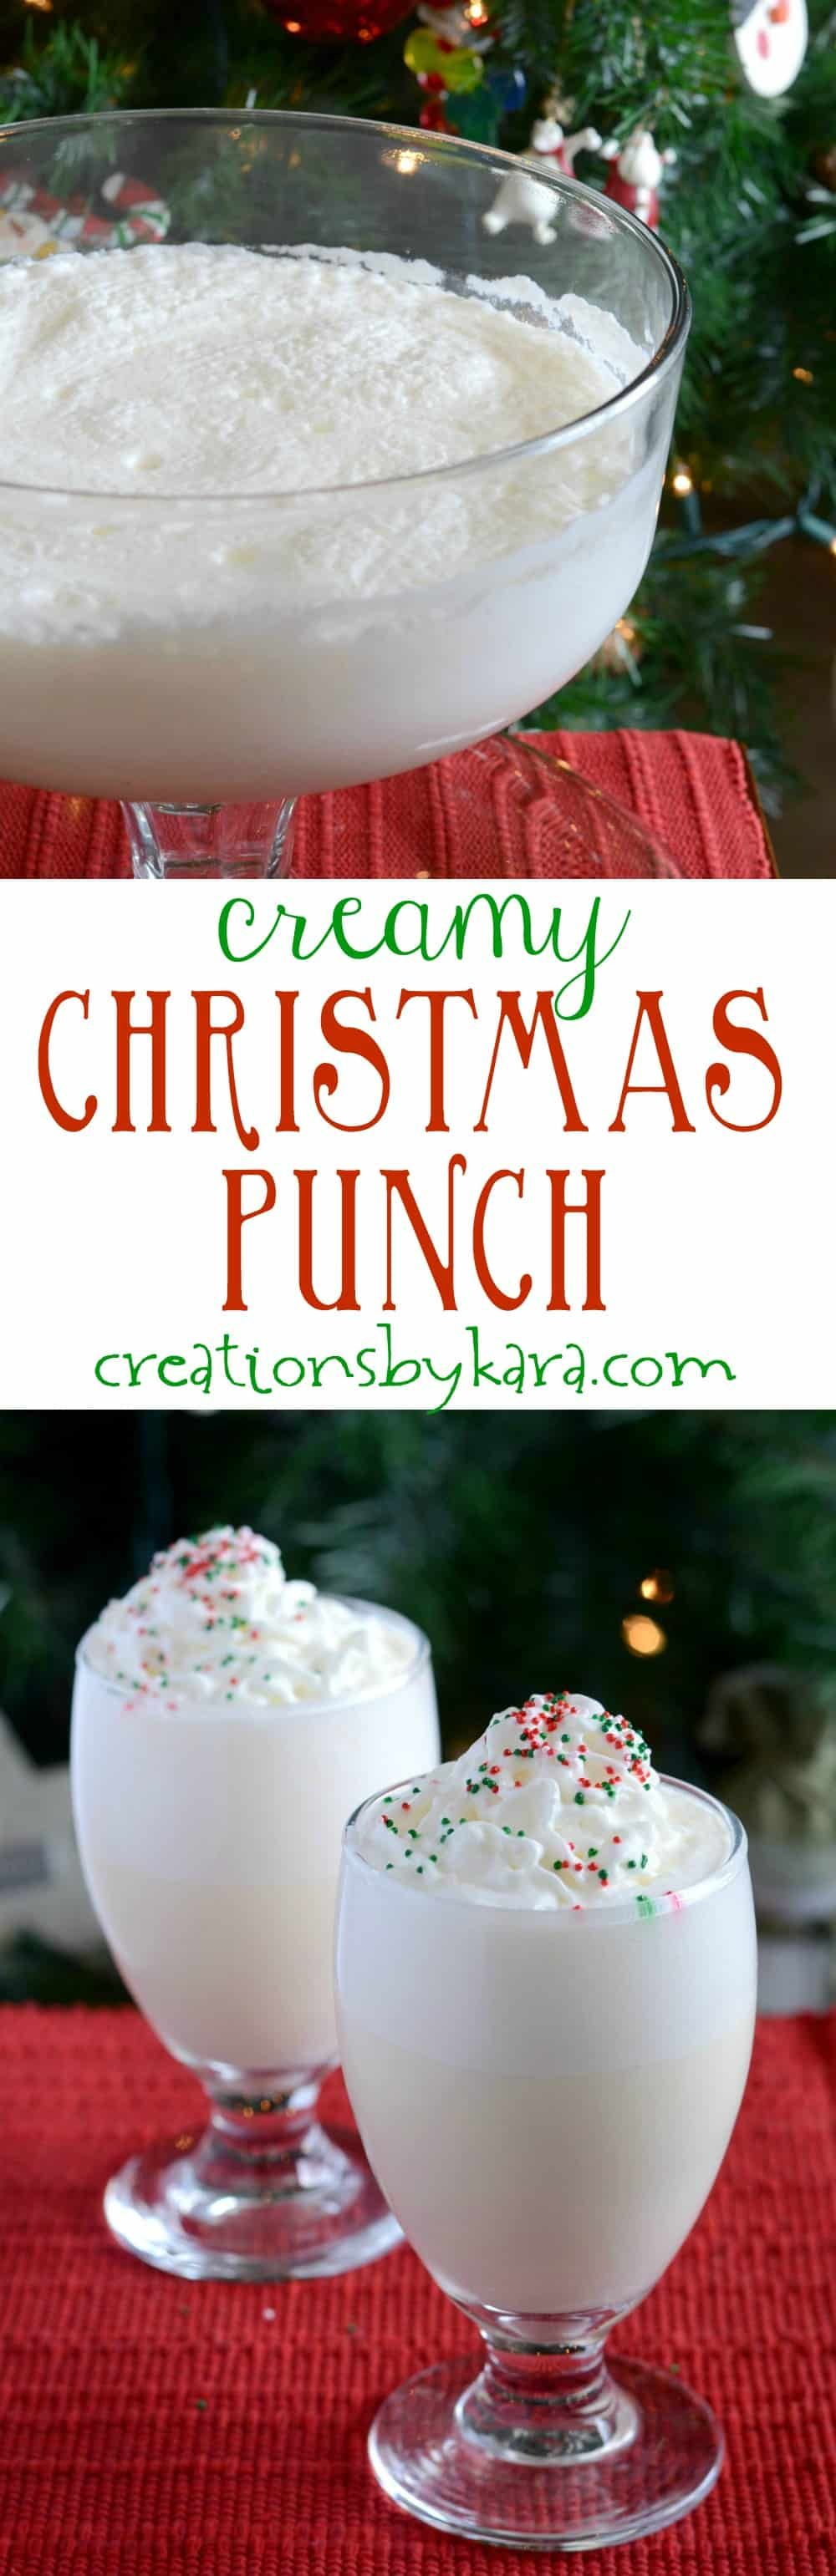 Creamy White Christmas Punch Recipe – Creations by Kara